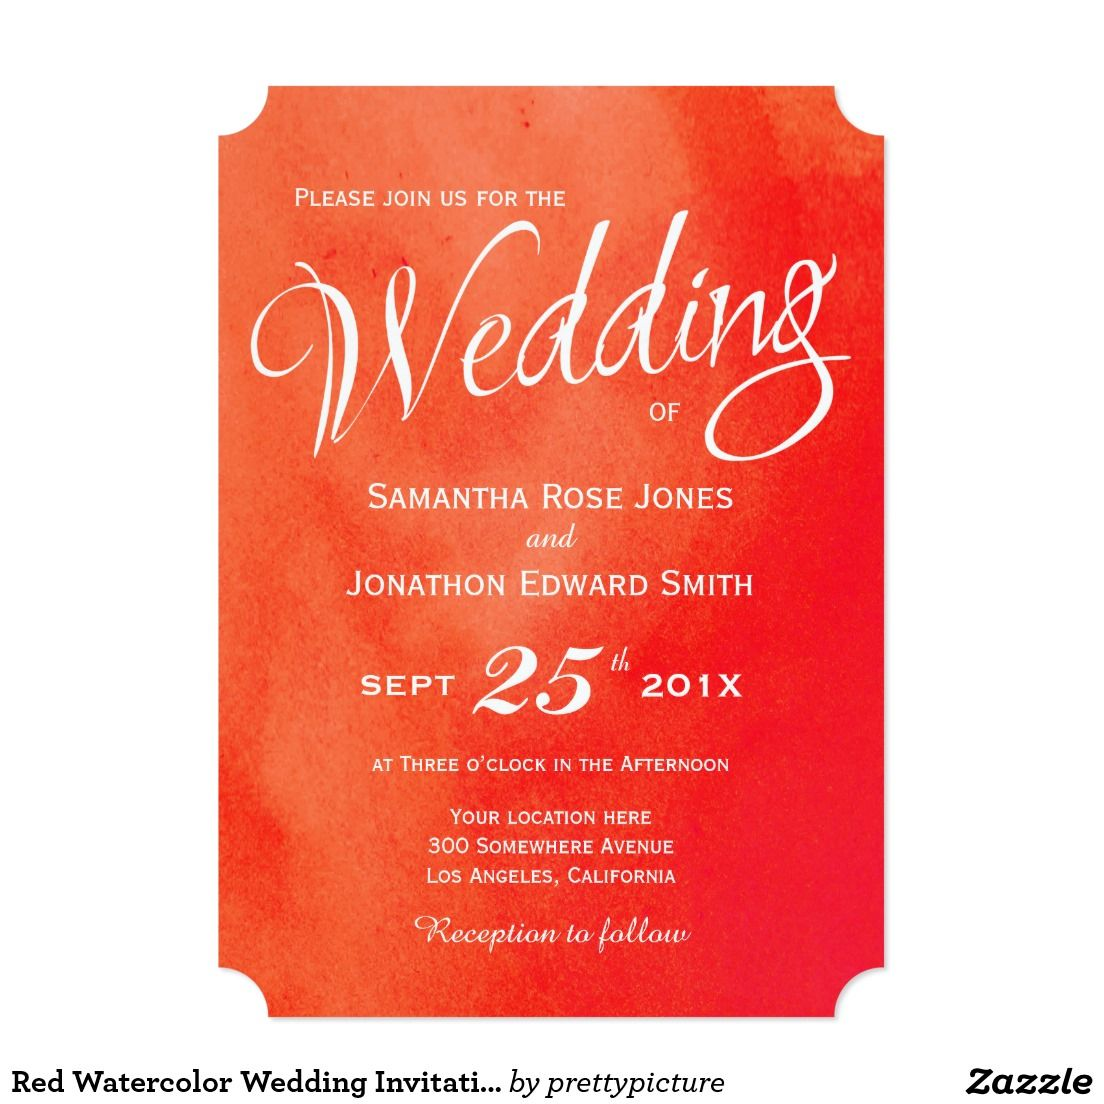 Modern Wedding Invitation Zazzle Ideas - Invitations and ...